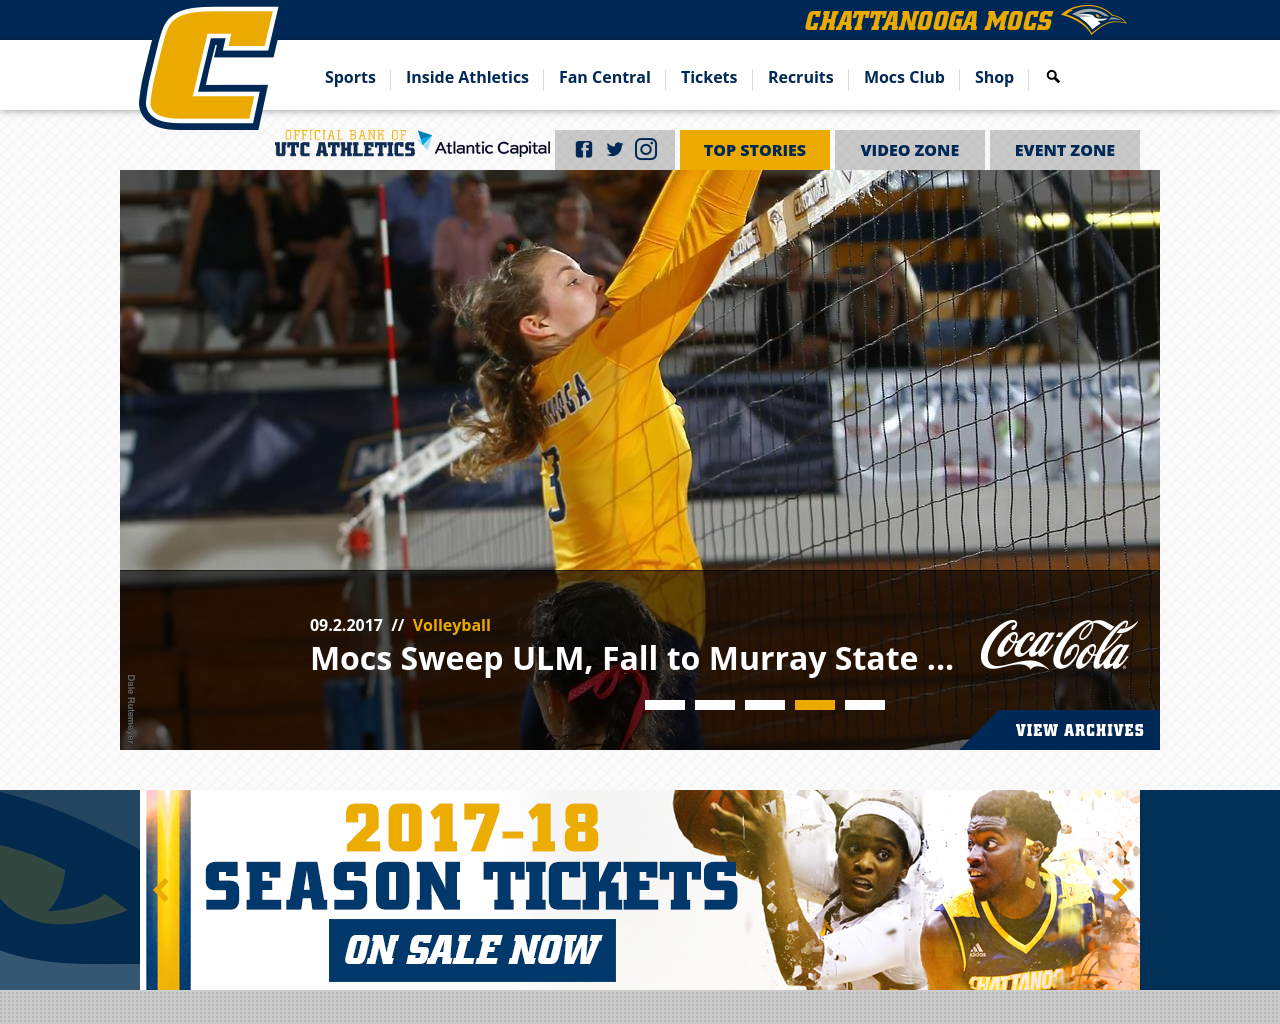 Chattanooga-Mocs-Advertising-Reviews-Pricing